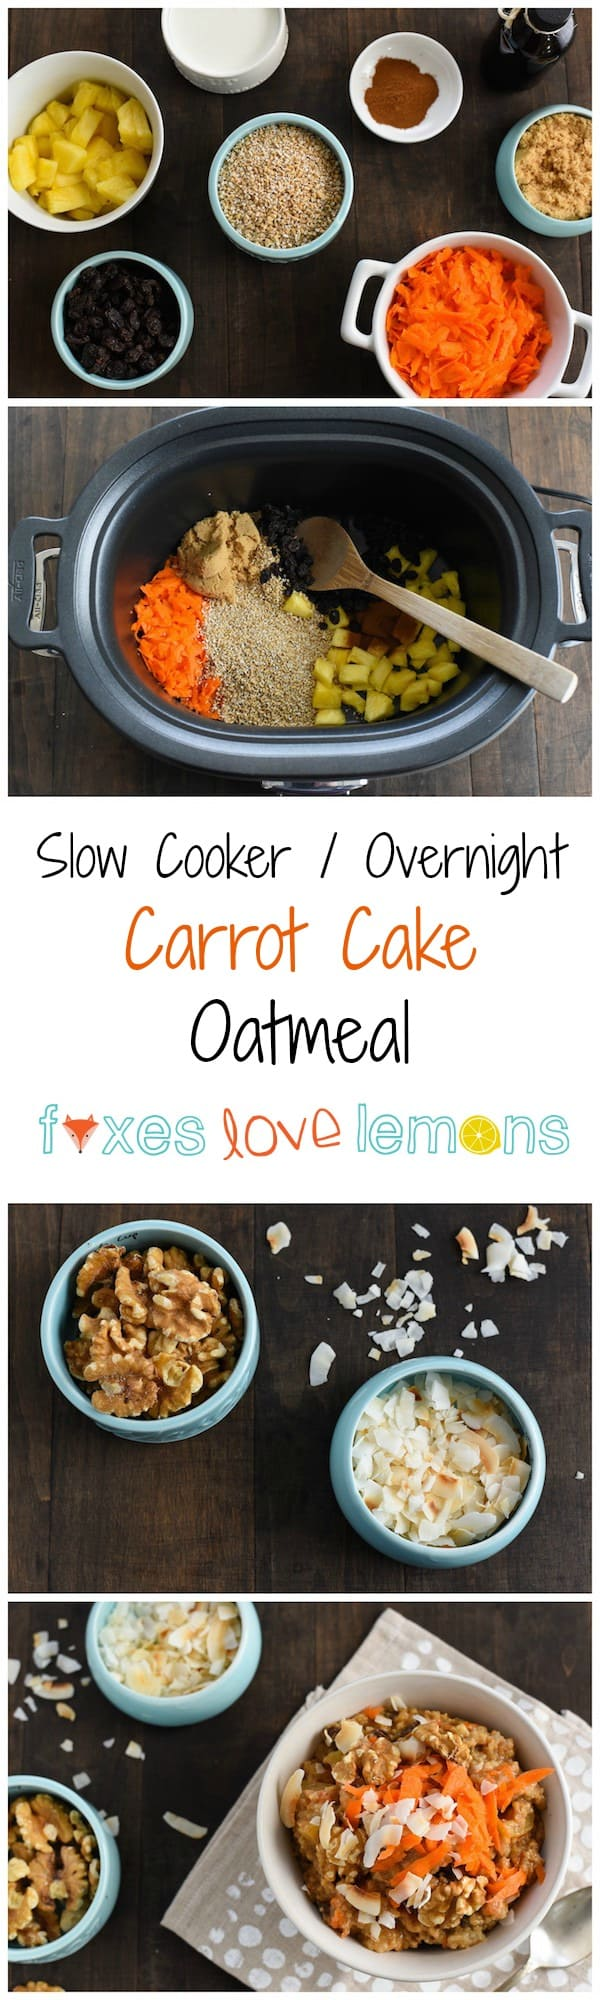 Collage of four images of carrot cake oatmeal, the ingredients for it, and stirring it in a slow cooker.